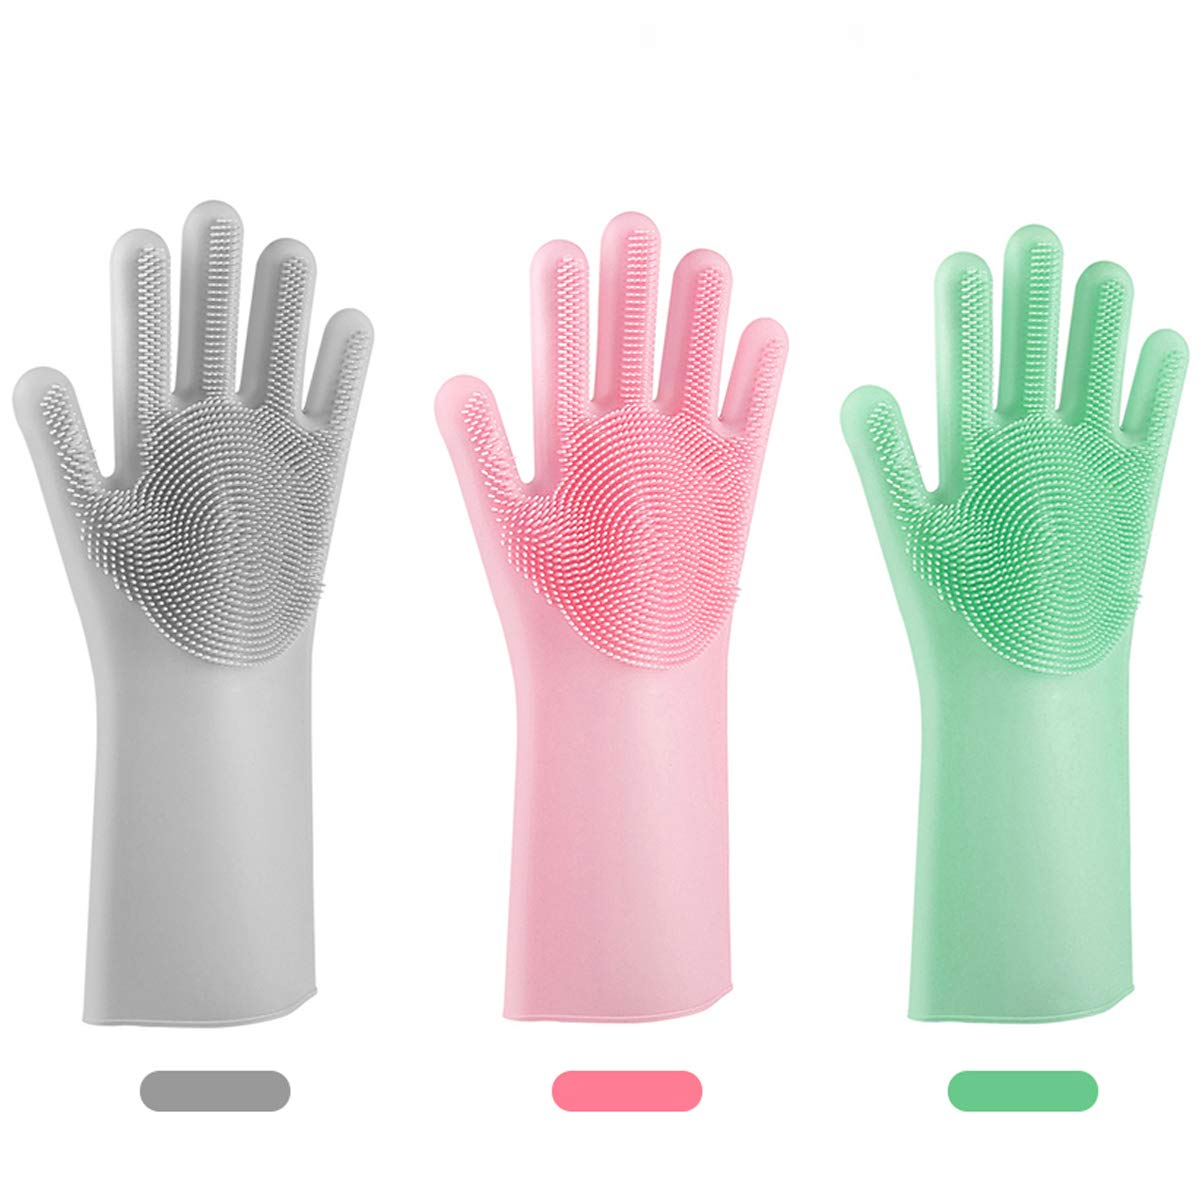 NIROLLE Reusable Silicone Dishwashing Gloves, 3 Pairs of Rubber Scrubbing Gloves for Dishes, Wash Cleaning Gloves with Sponge Scrubbers for Washing Kitchen, Bathroom, Car and More